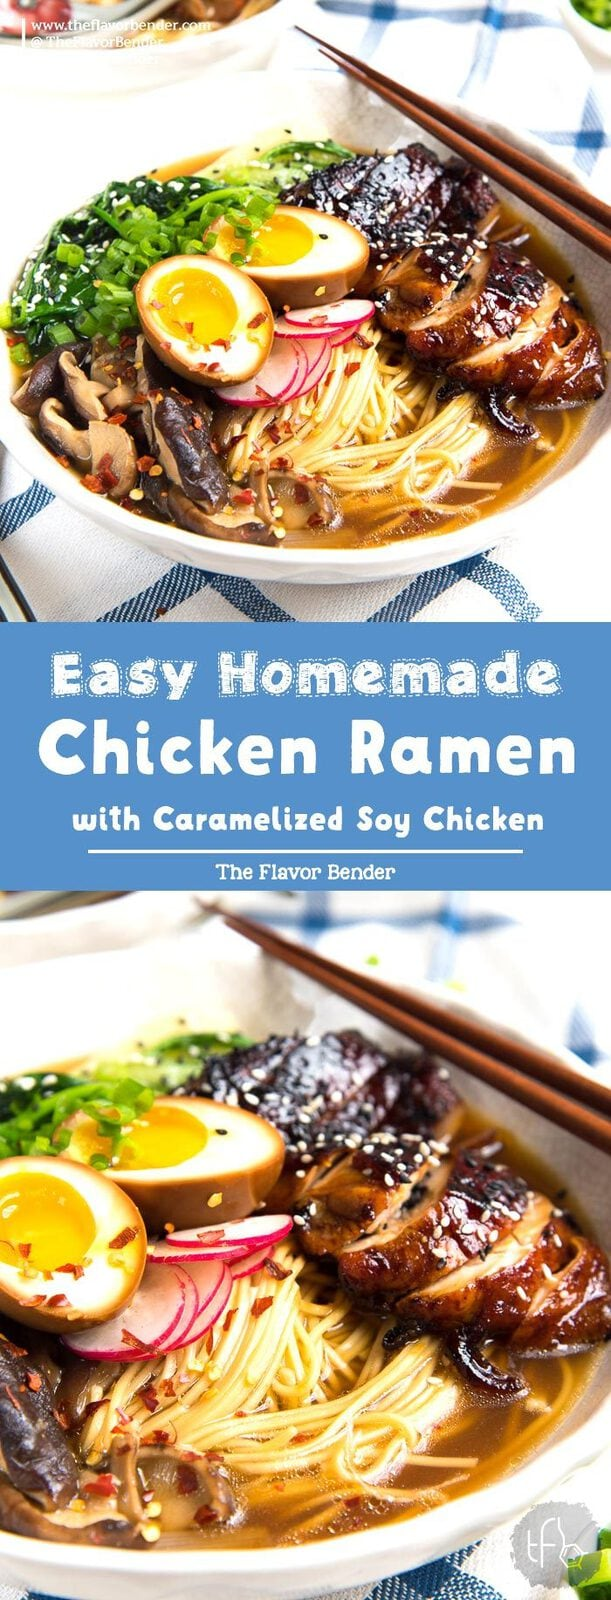 Easy Homemade Chicken Ramen - An incredibly flavorful Chicken ramen with authentic flavors, but easy to make for dinner! Topped with caramelized soy chicken and a ramen egg. Ready in 30 - 45 minutes. #EasyChickenRamen #HomemadeChickenRamen #AsianRecipes #EasyDinner #AuthenticRamen